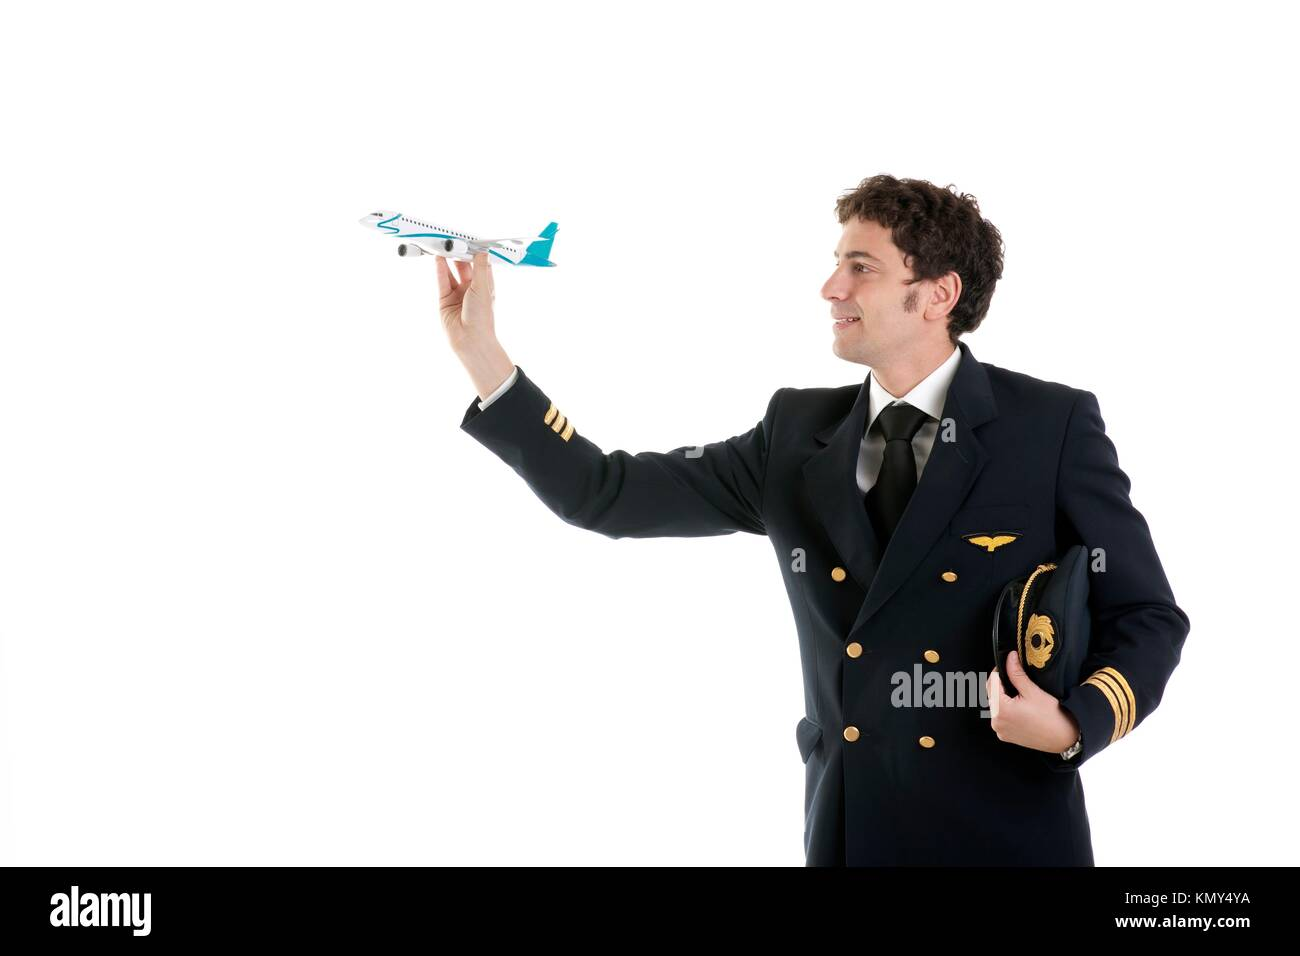 Airline Pilot/Captain with airplane model - Stock Image